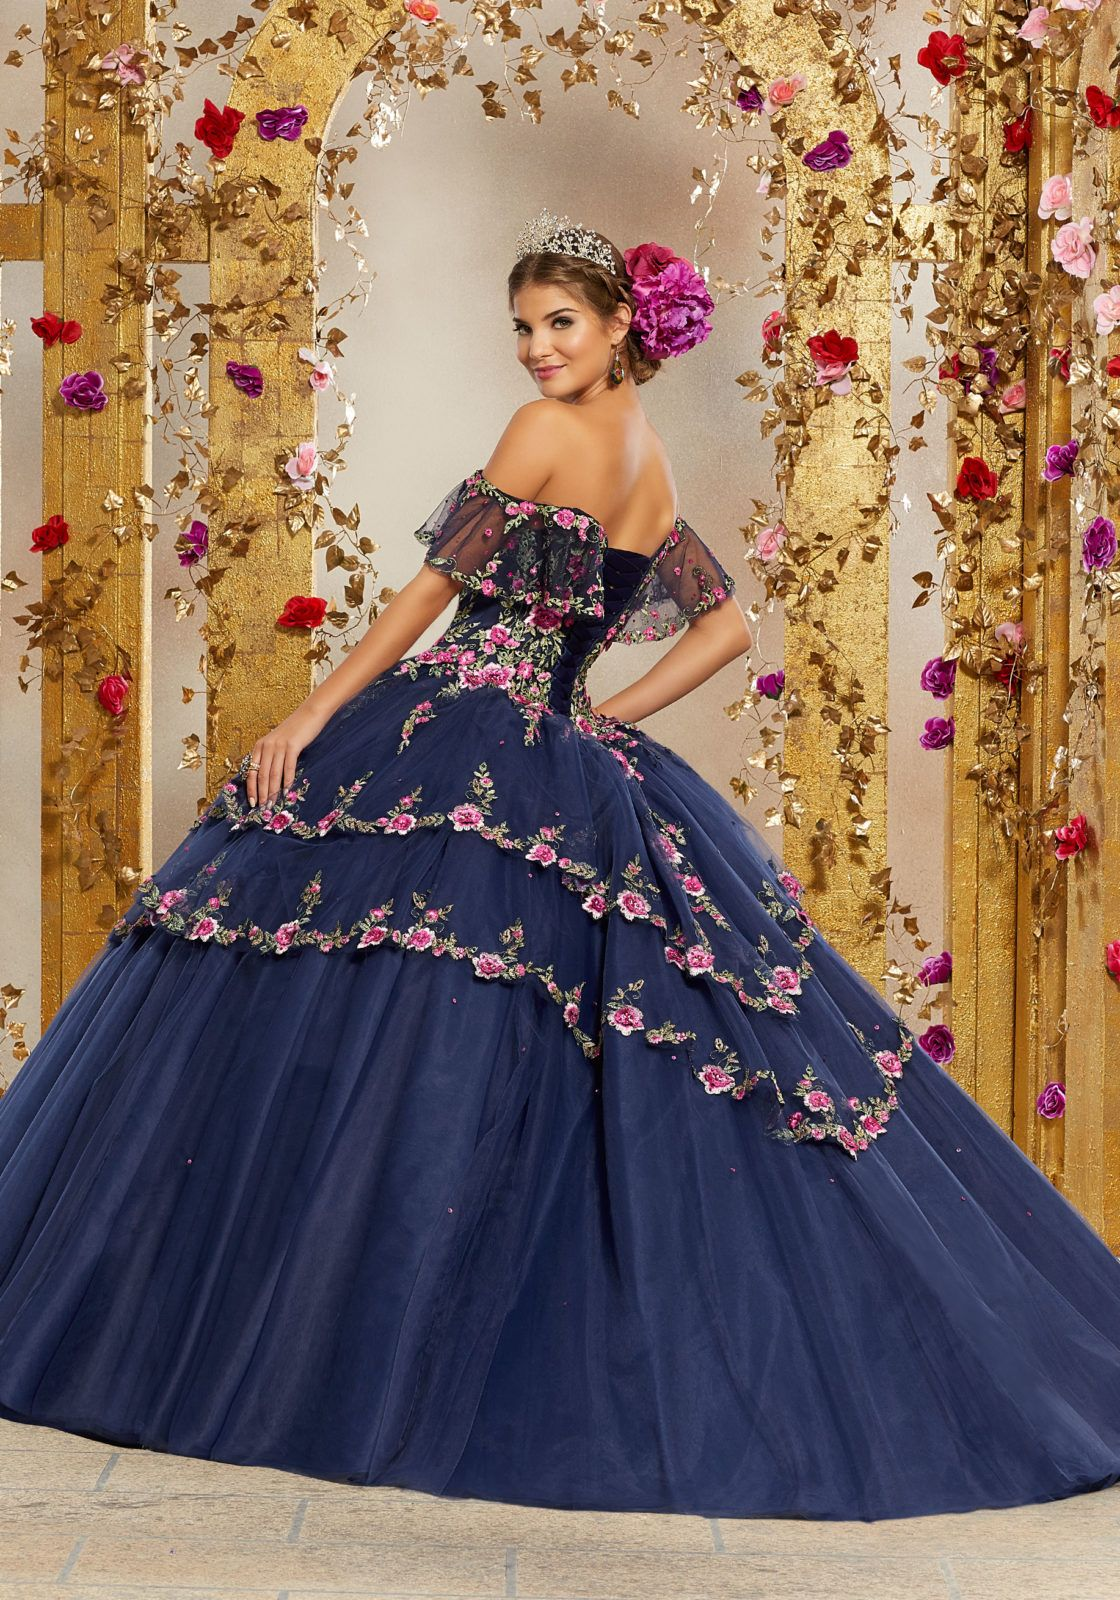 bbf6fccfc STYLE  34004 Glamorous Quinceañera Dress Featuring an Off the Shoulder  Flounced Neckline and Full Tiered Skirt Edged in Embroidery. Matching Stole  Included.